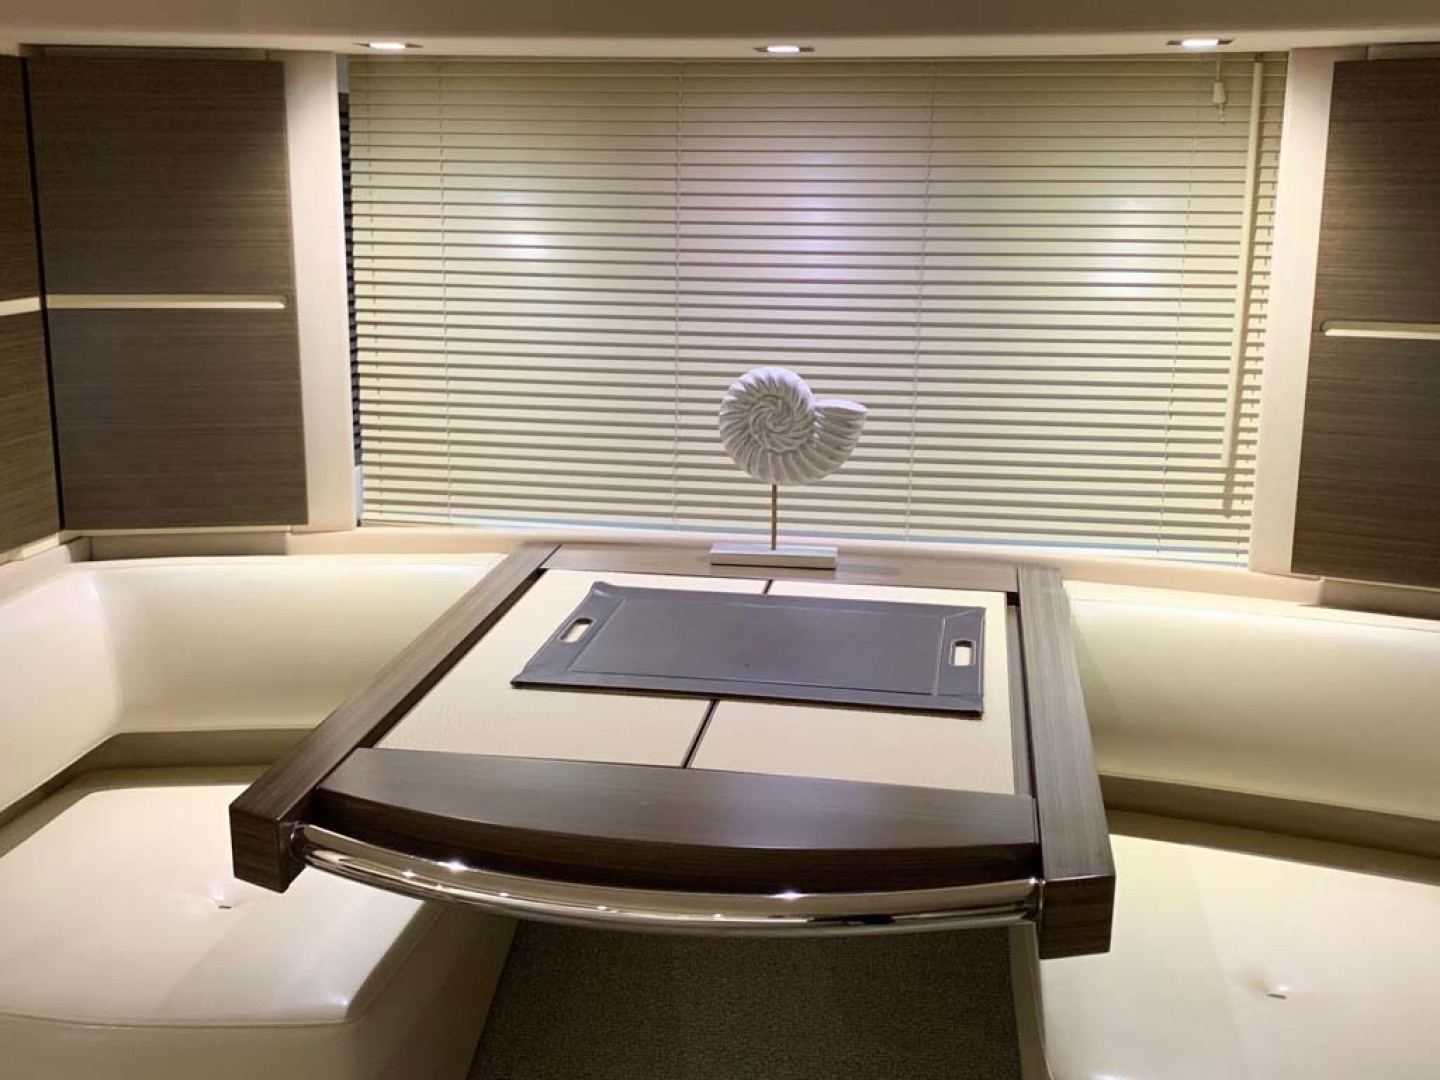 Azimut-54 Flybridge 2014-Suits Fort Lauderdale-Florida-United States-Main Stateroom Desk Vanity To Port-1292177 | Thumbnail